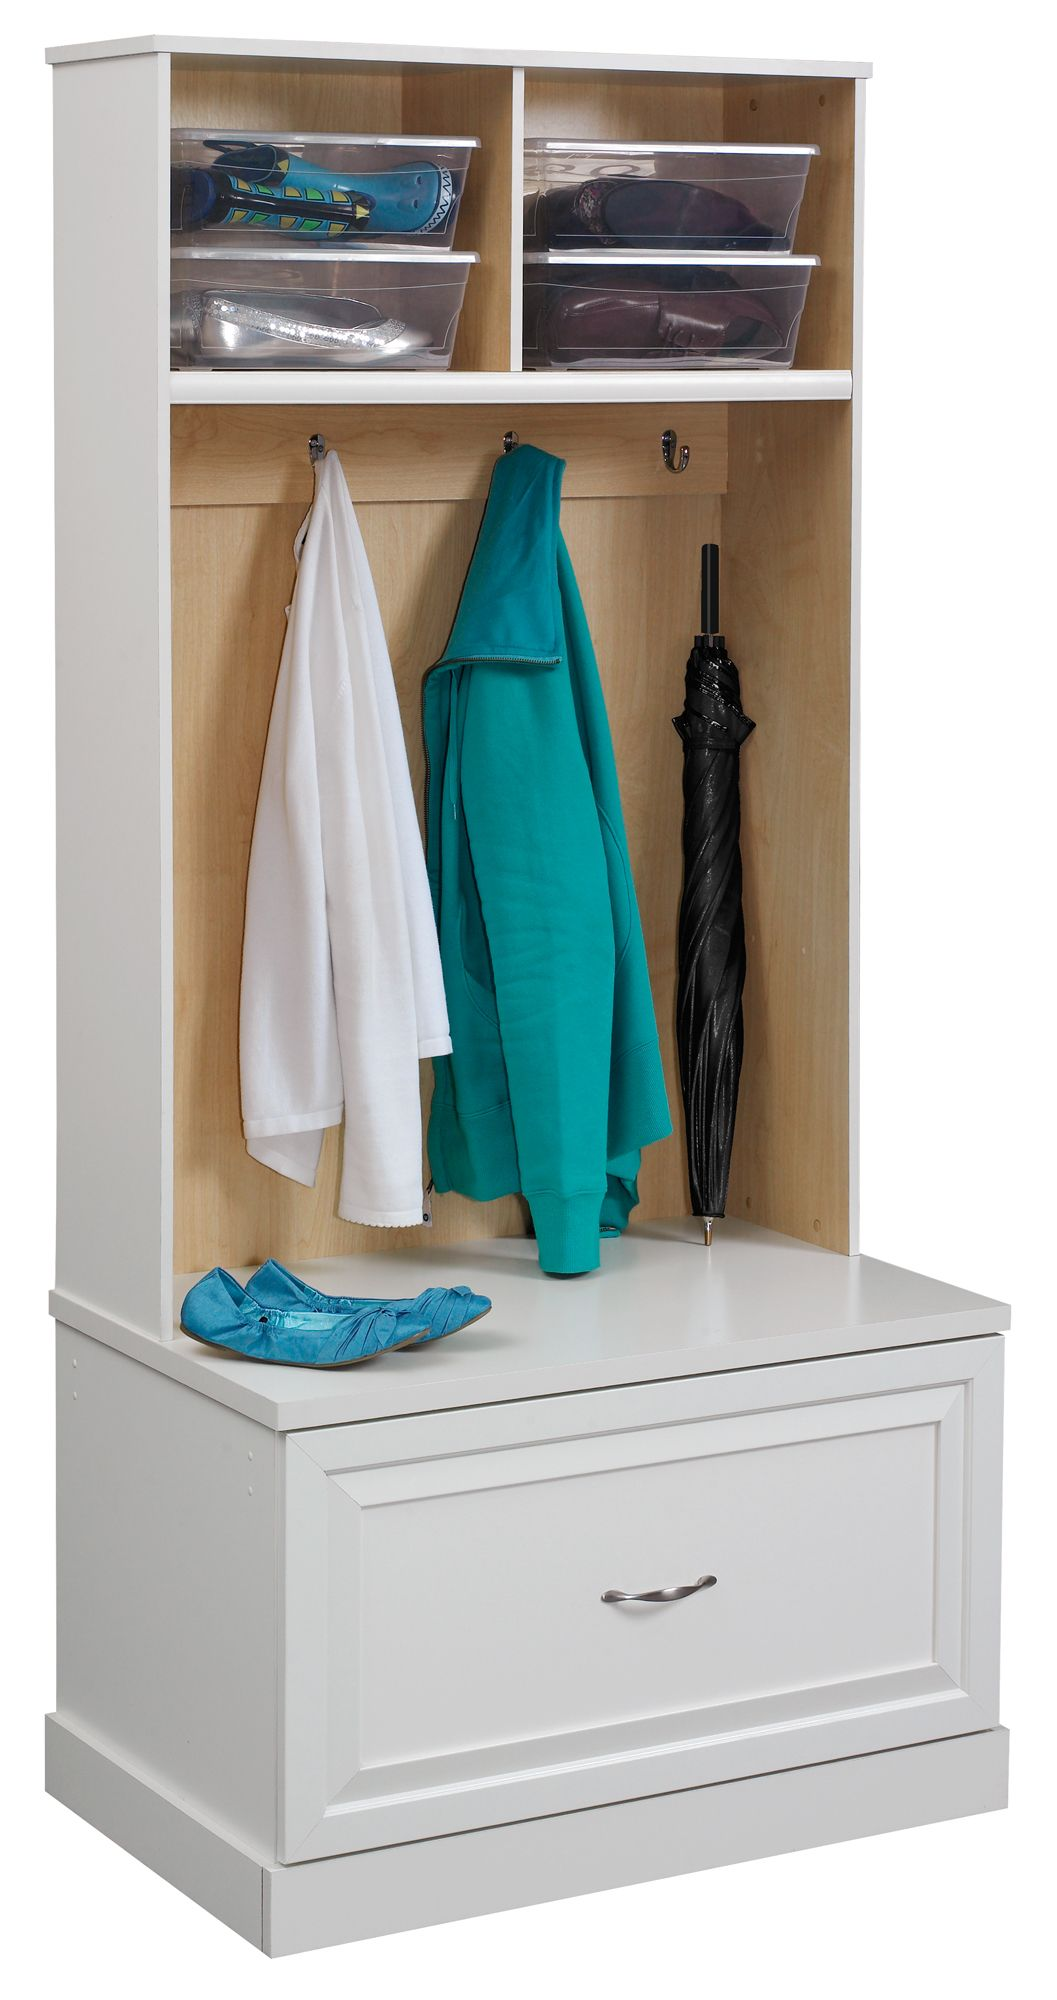 Décor Bench Storage Organization Canada Online Ping